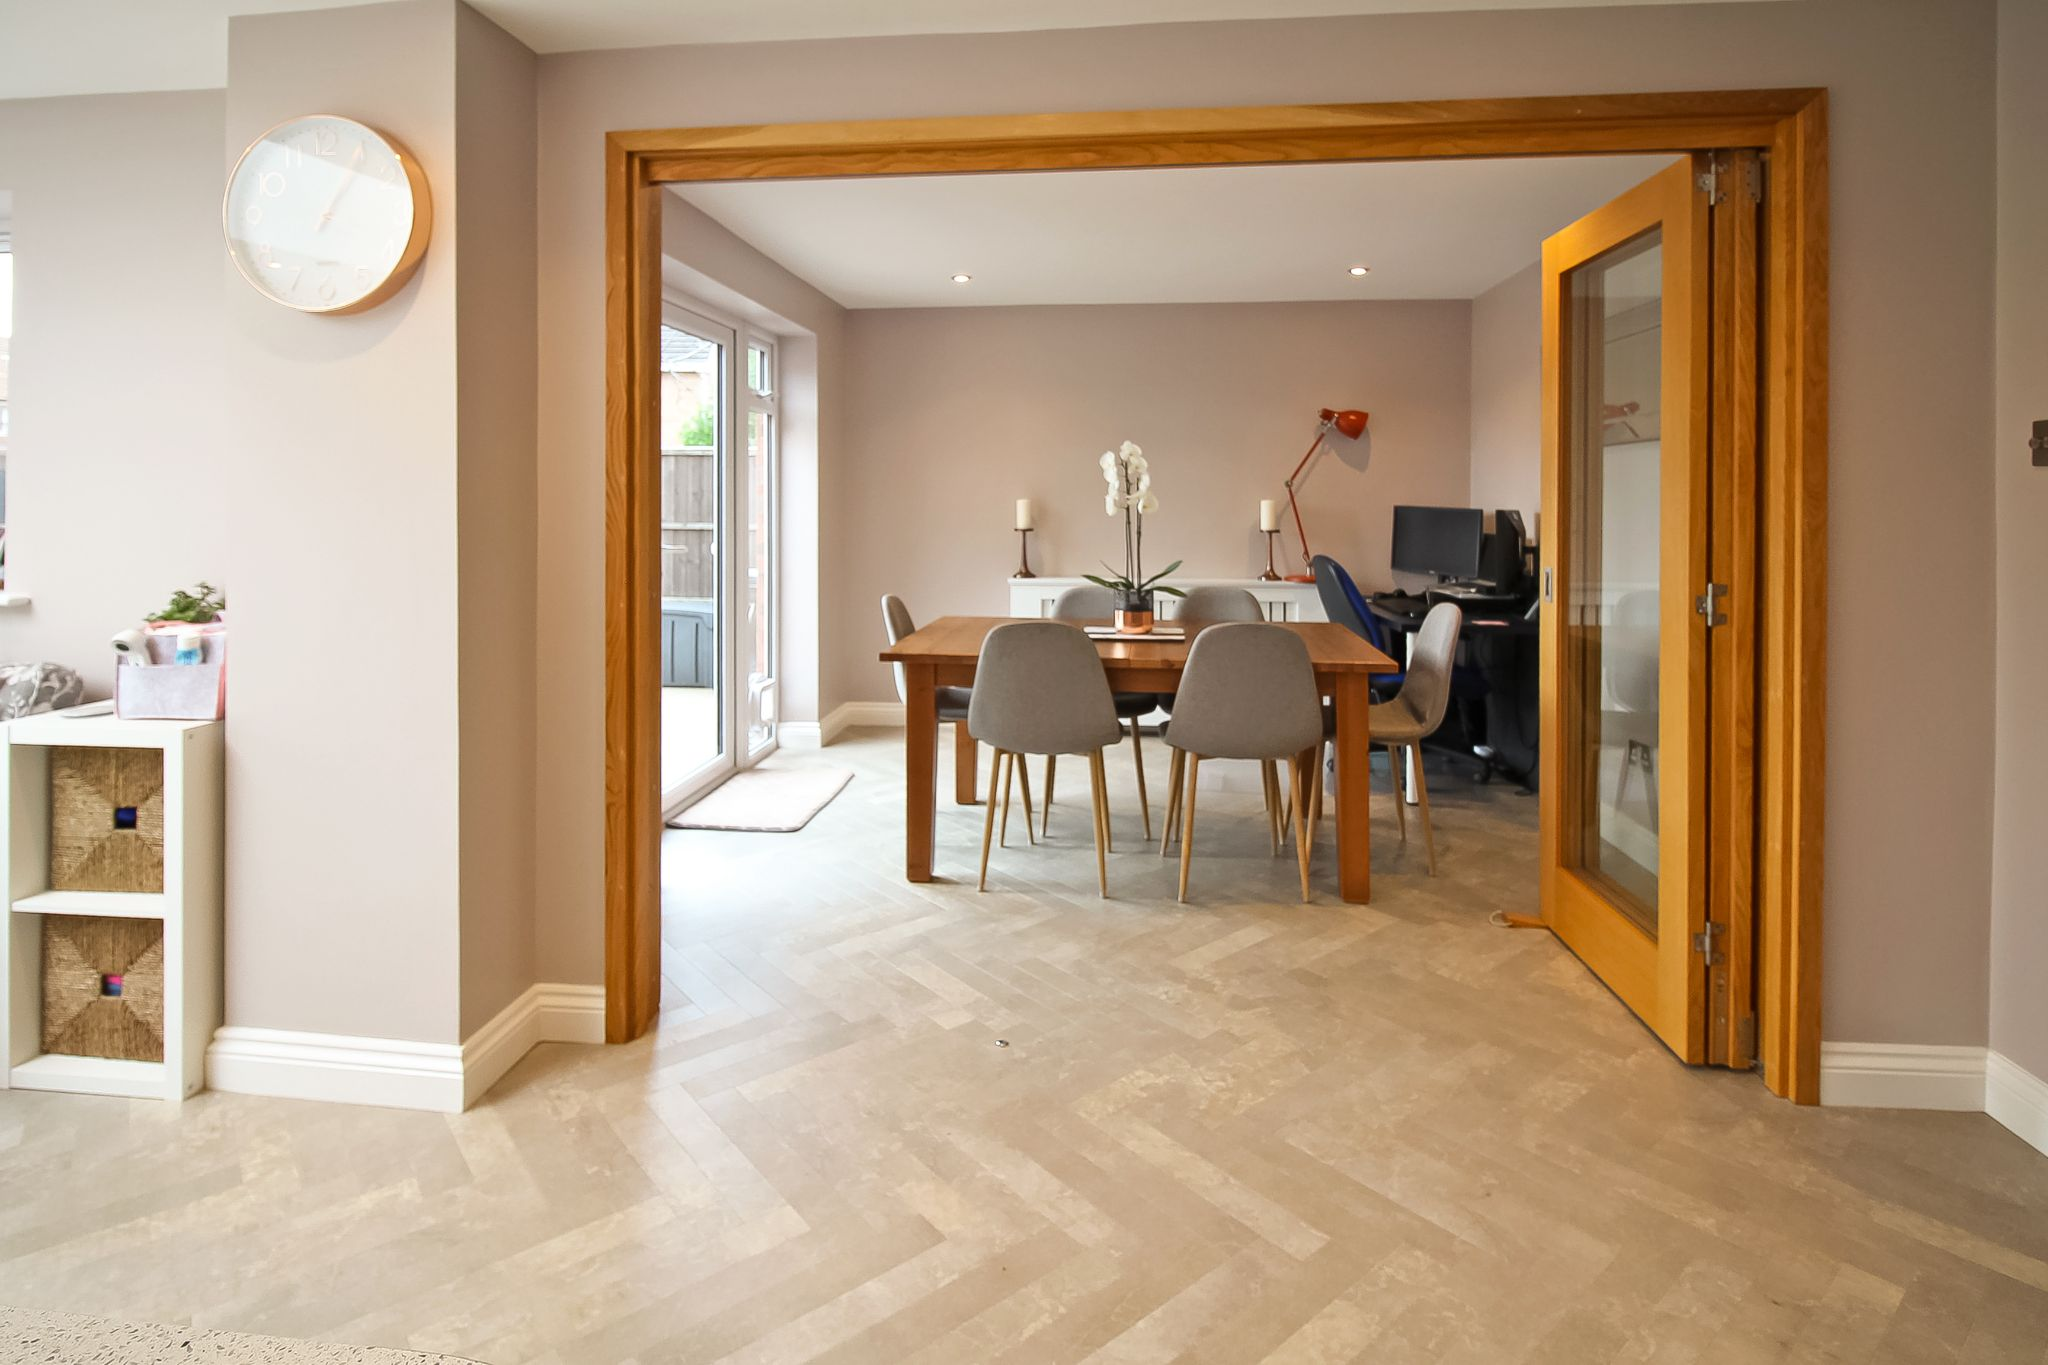 4 bedroom detached house For Sale in Solihull - Photograph 6.